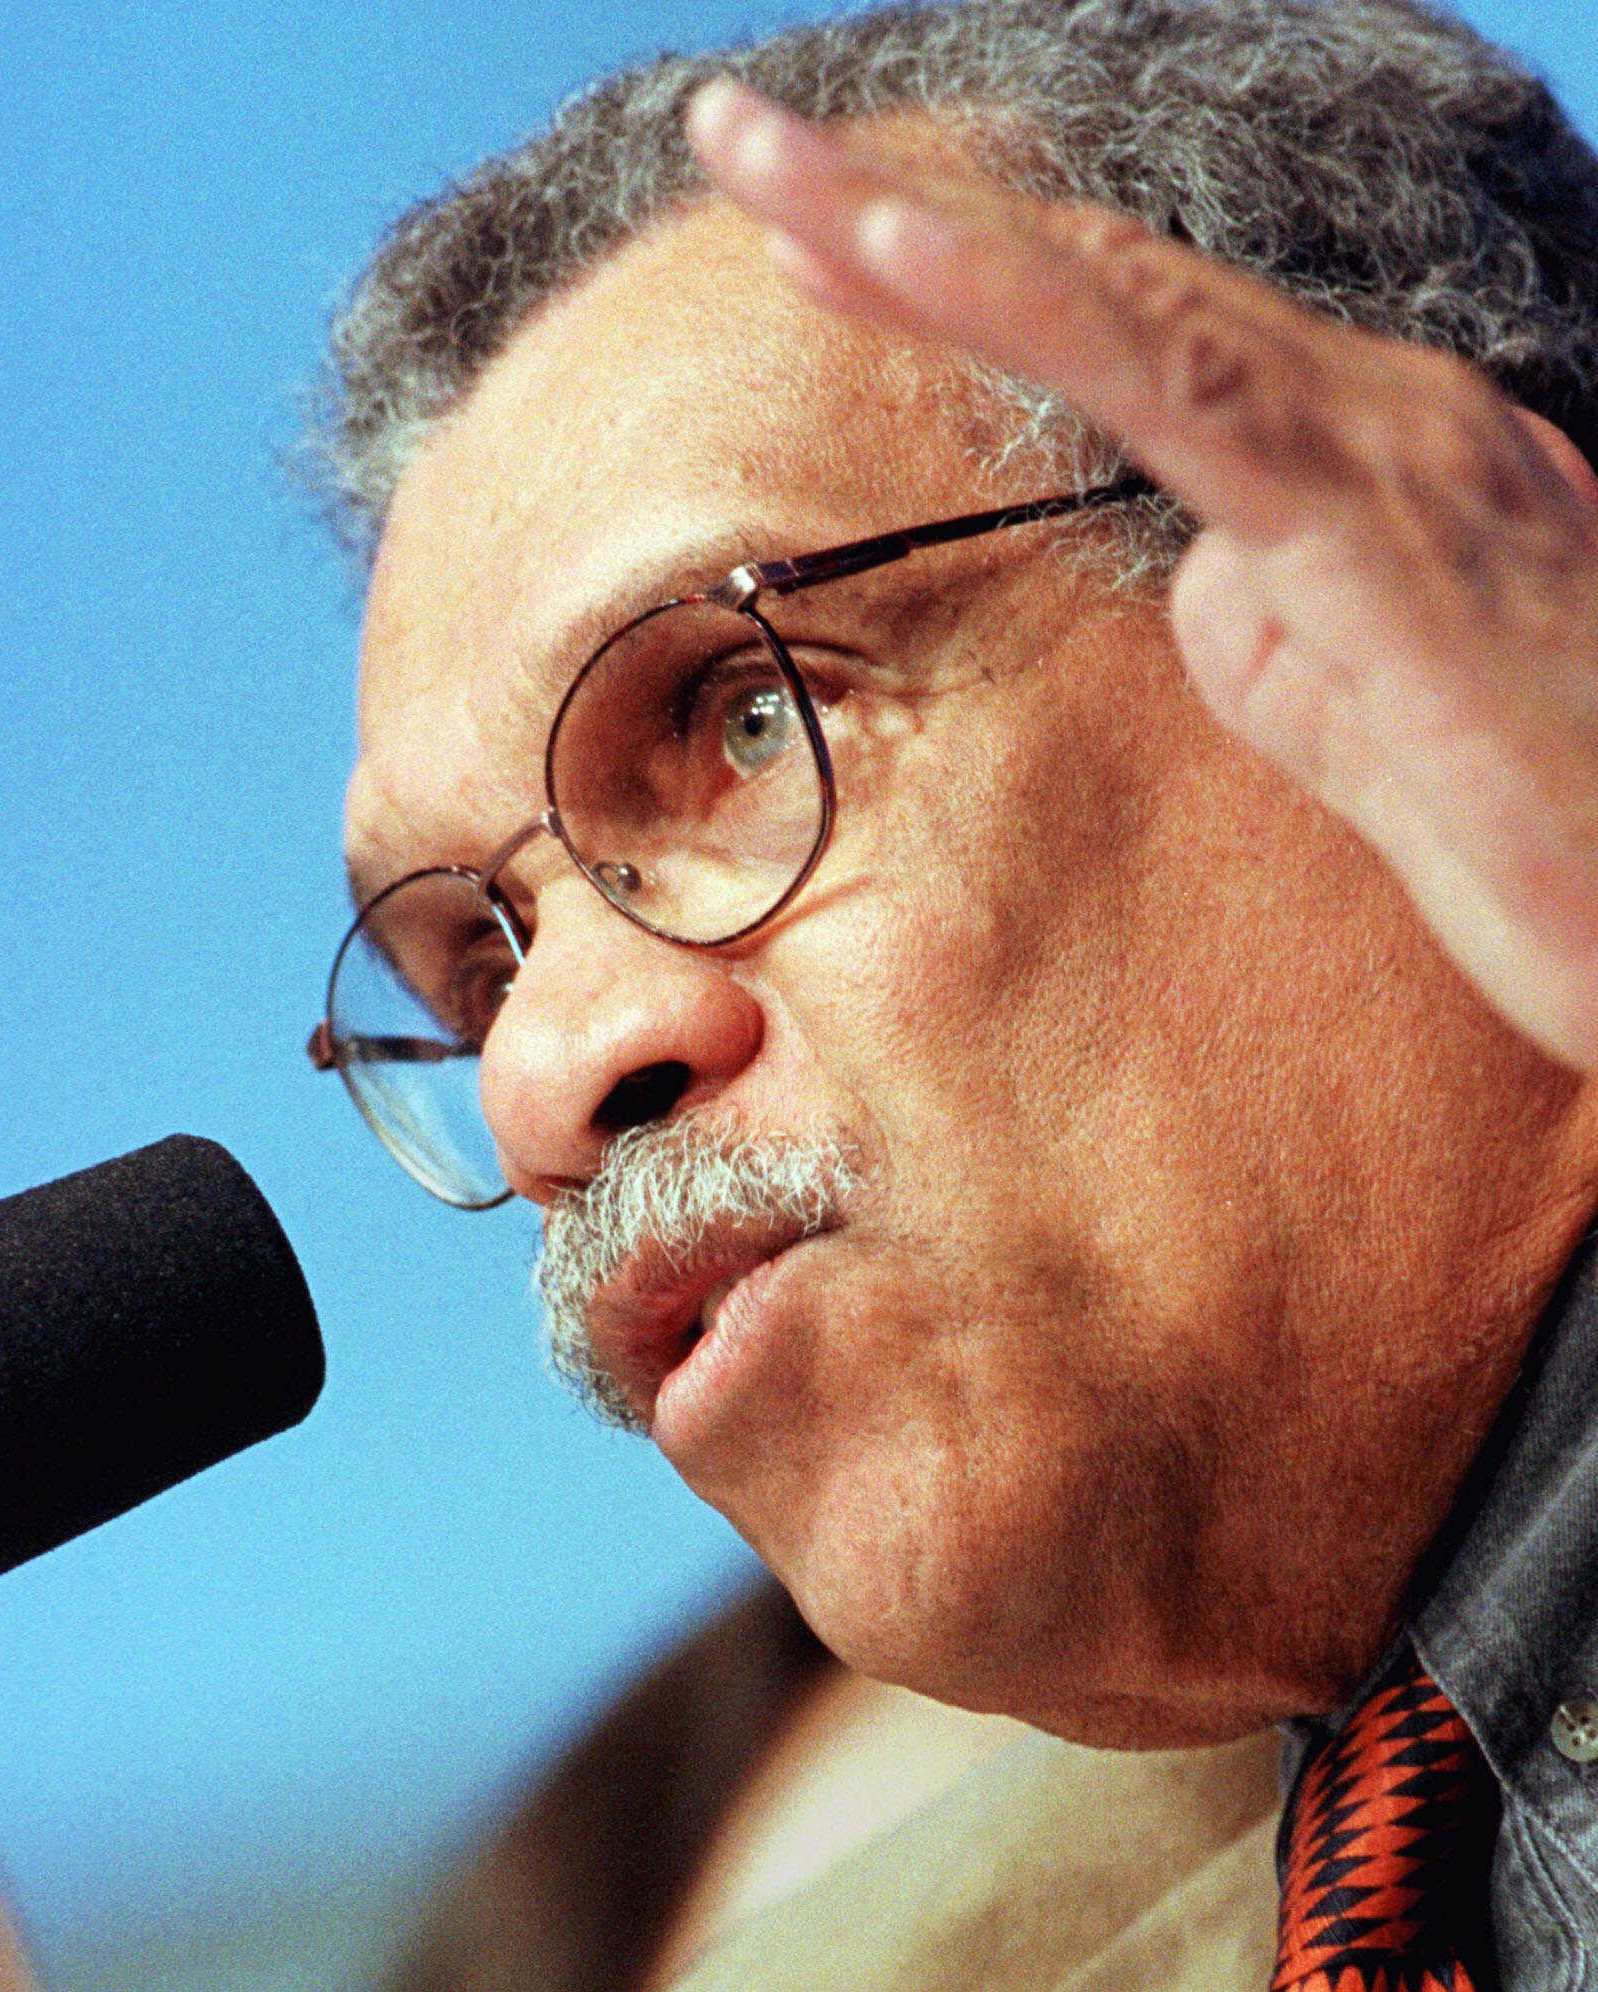 analyzing themes and language of a derek walcott poem english literature essay View homework help - derek walcott - midsummer tobaggo analysis from english ib english at victoria park collegiate institute derek walcott- personal life and poetry derek walcott is a nobel.